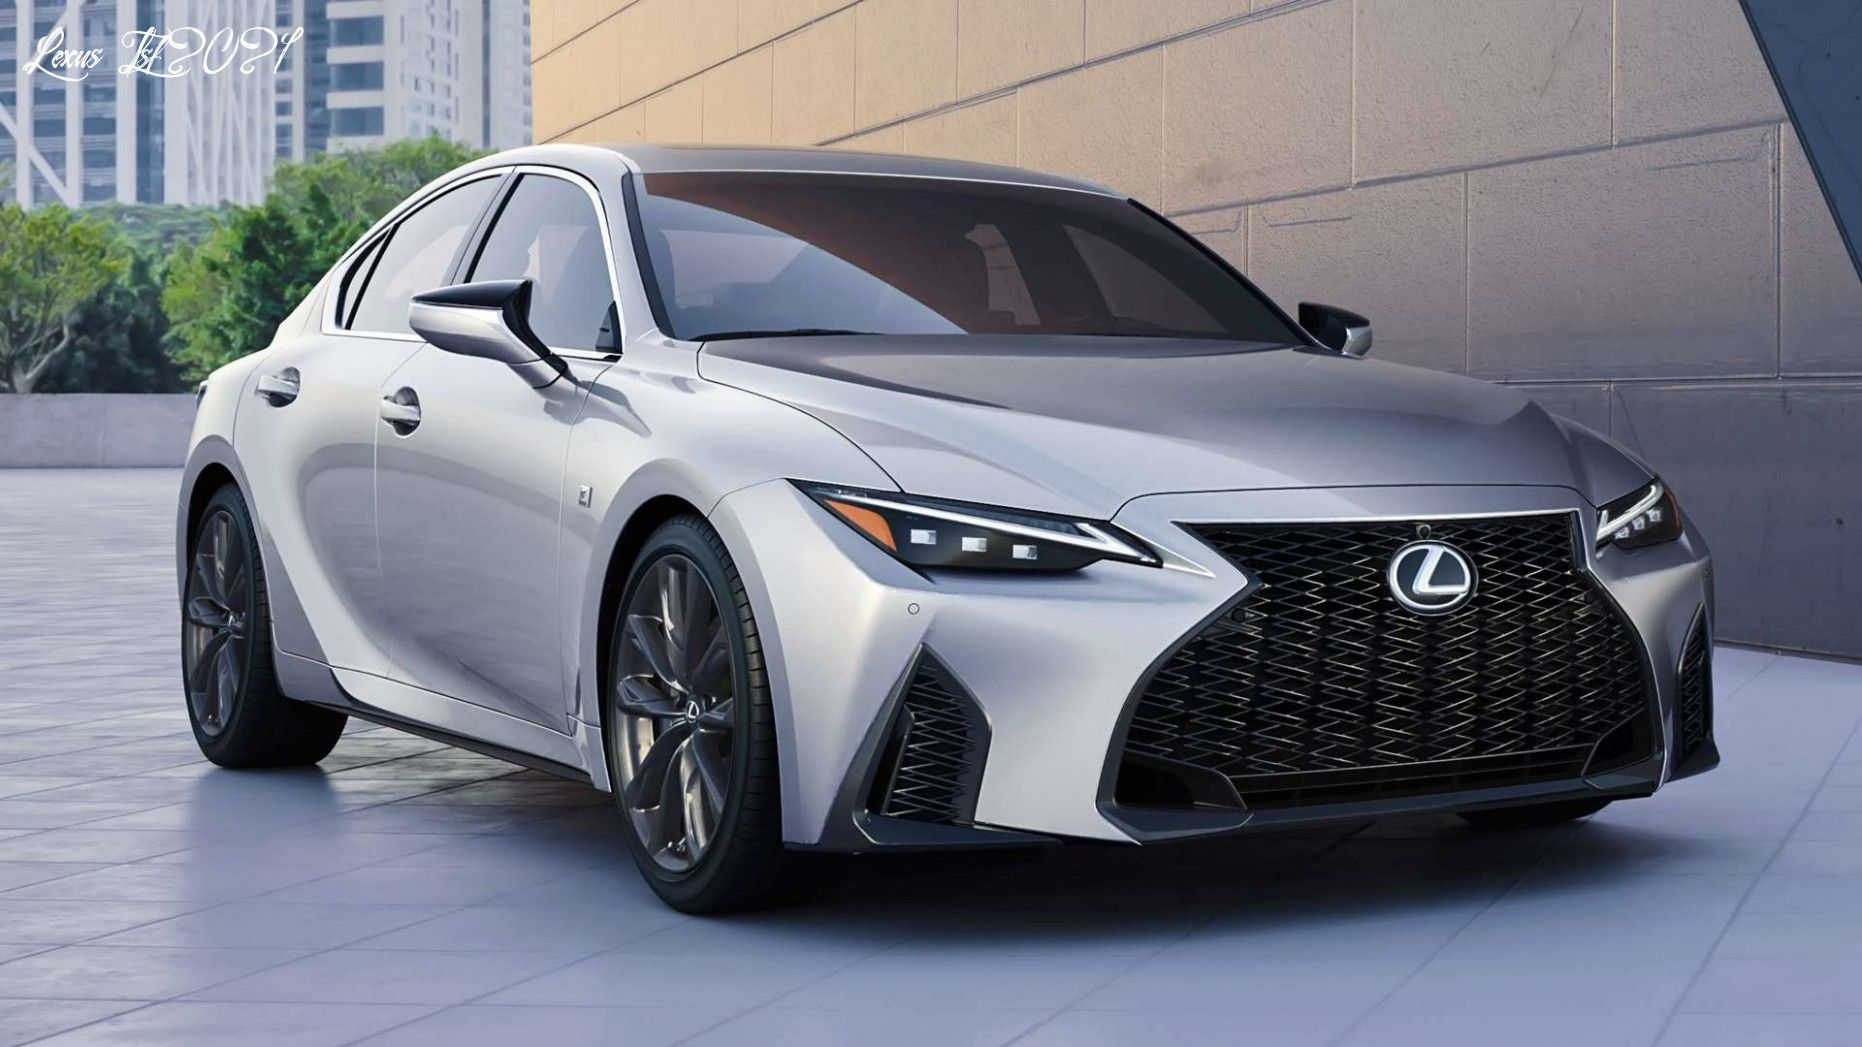 Lexus Isf 2021 Concept And Review In 2020 Lexus Isf Lexus Sports Sedan